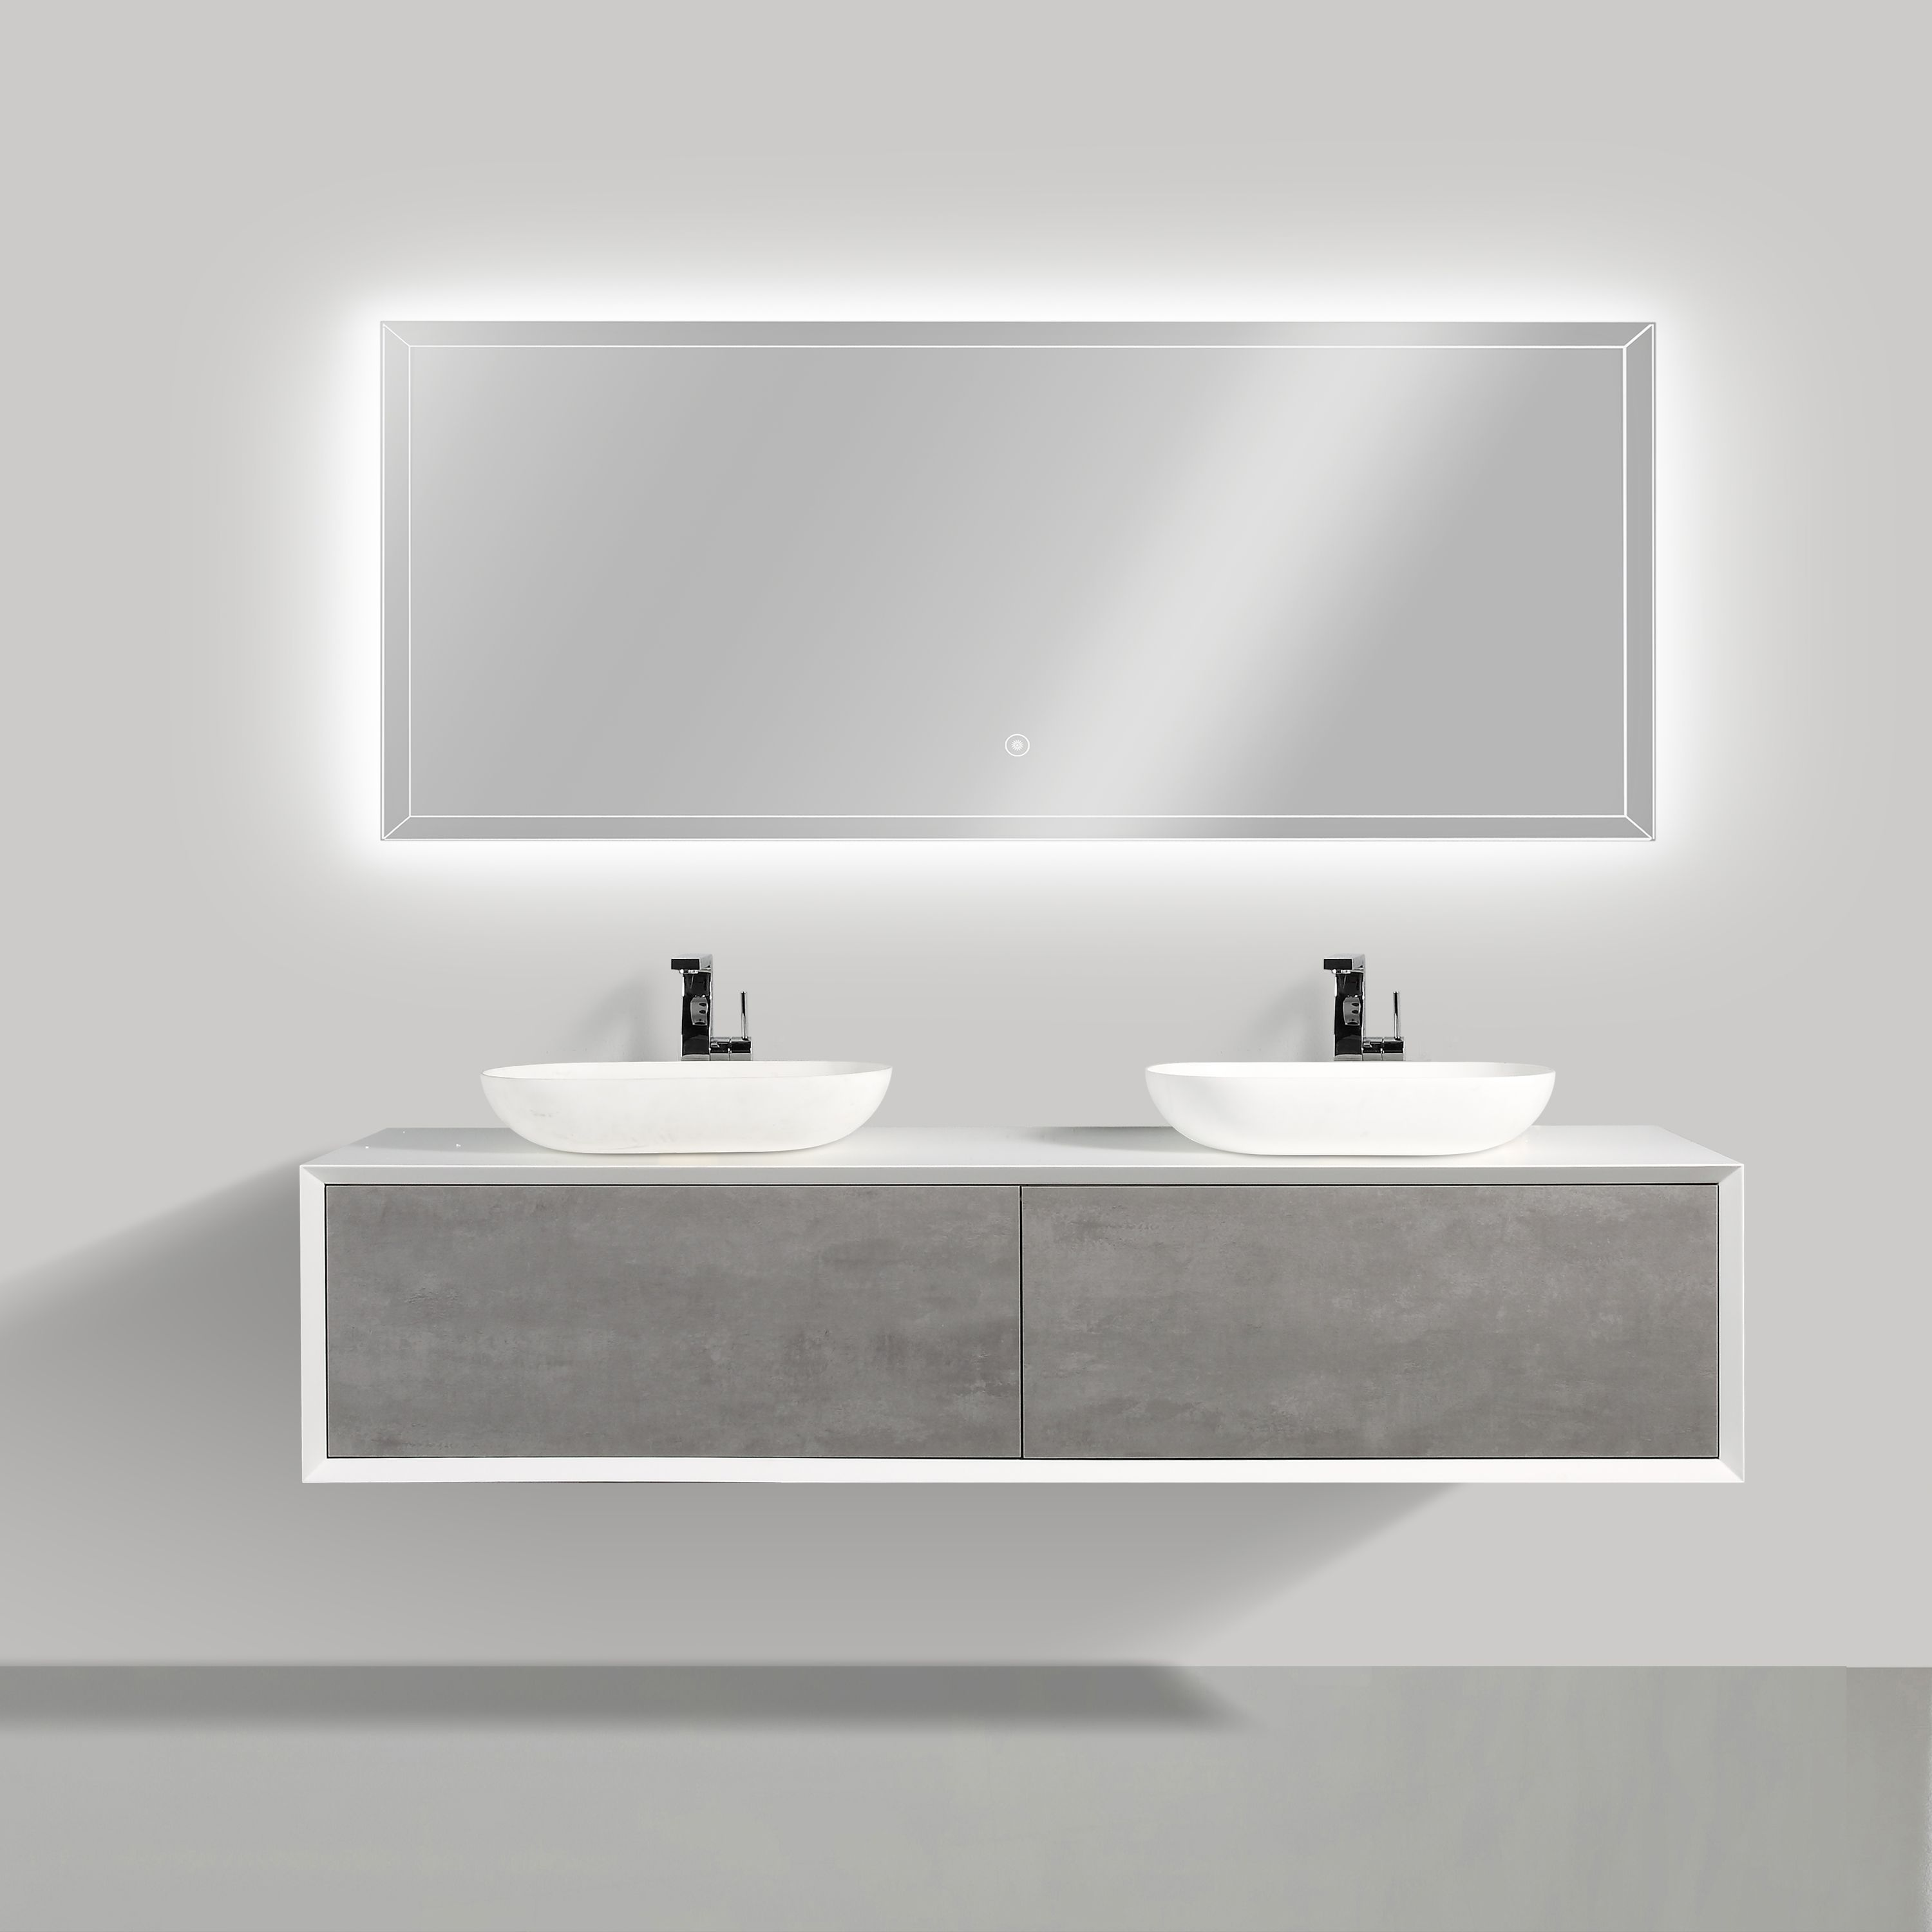 Bathroom furniture set FIONA 1800 white matte body and and concrete- effect drawers - mirror and basin optional